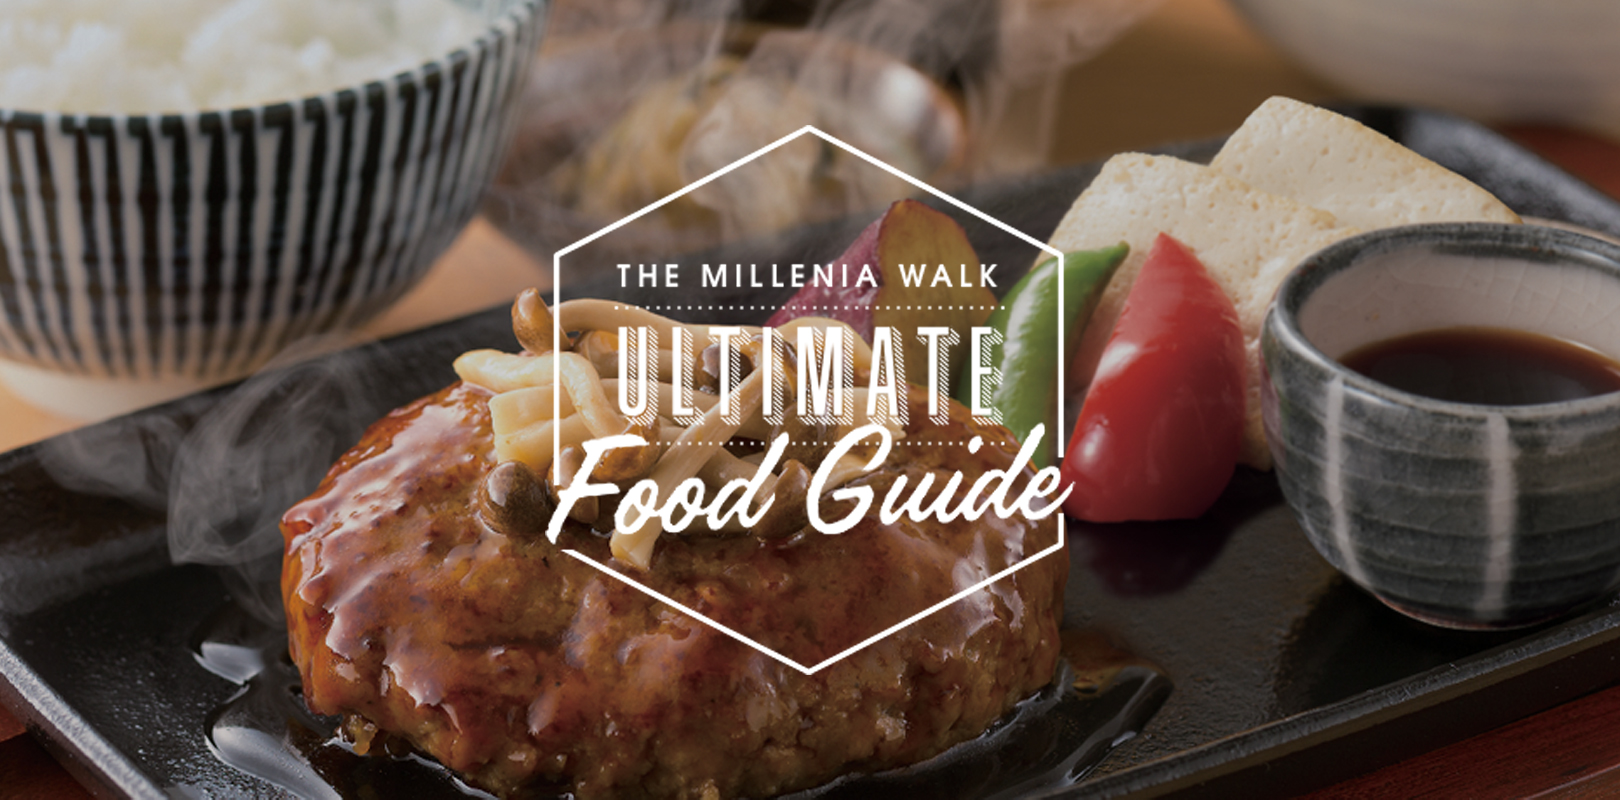 The Millenia Walk Food Guide